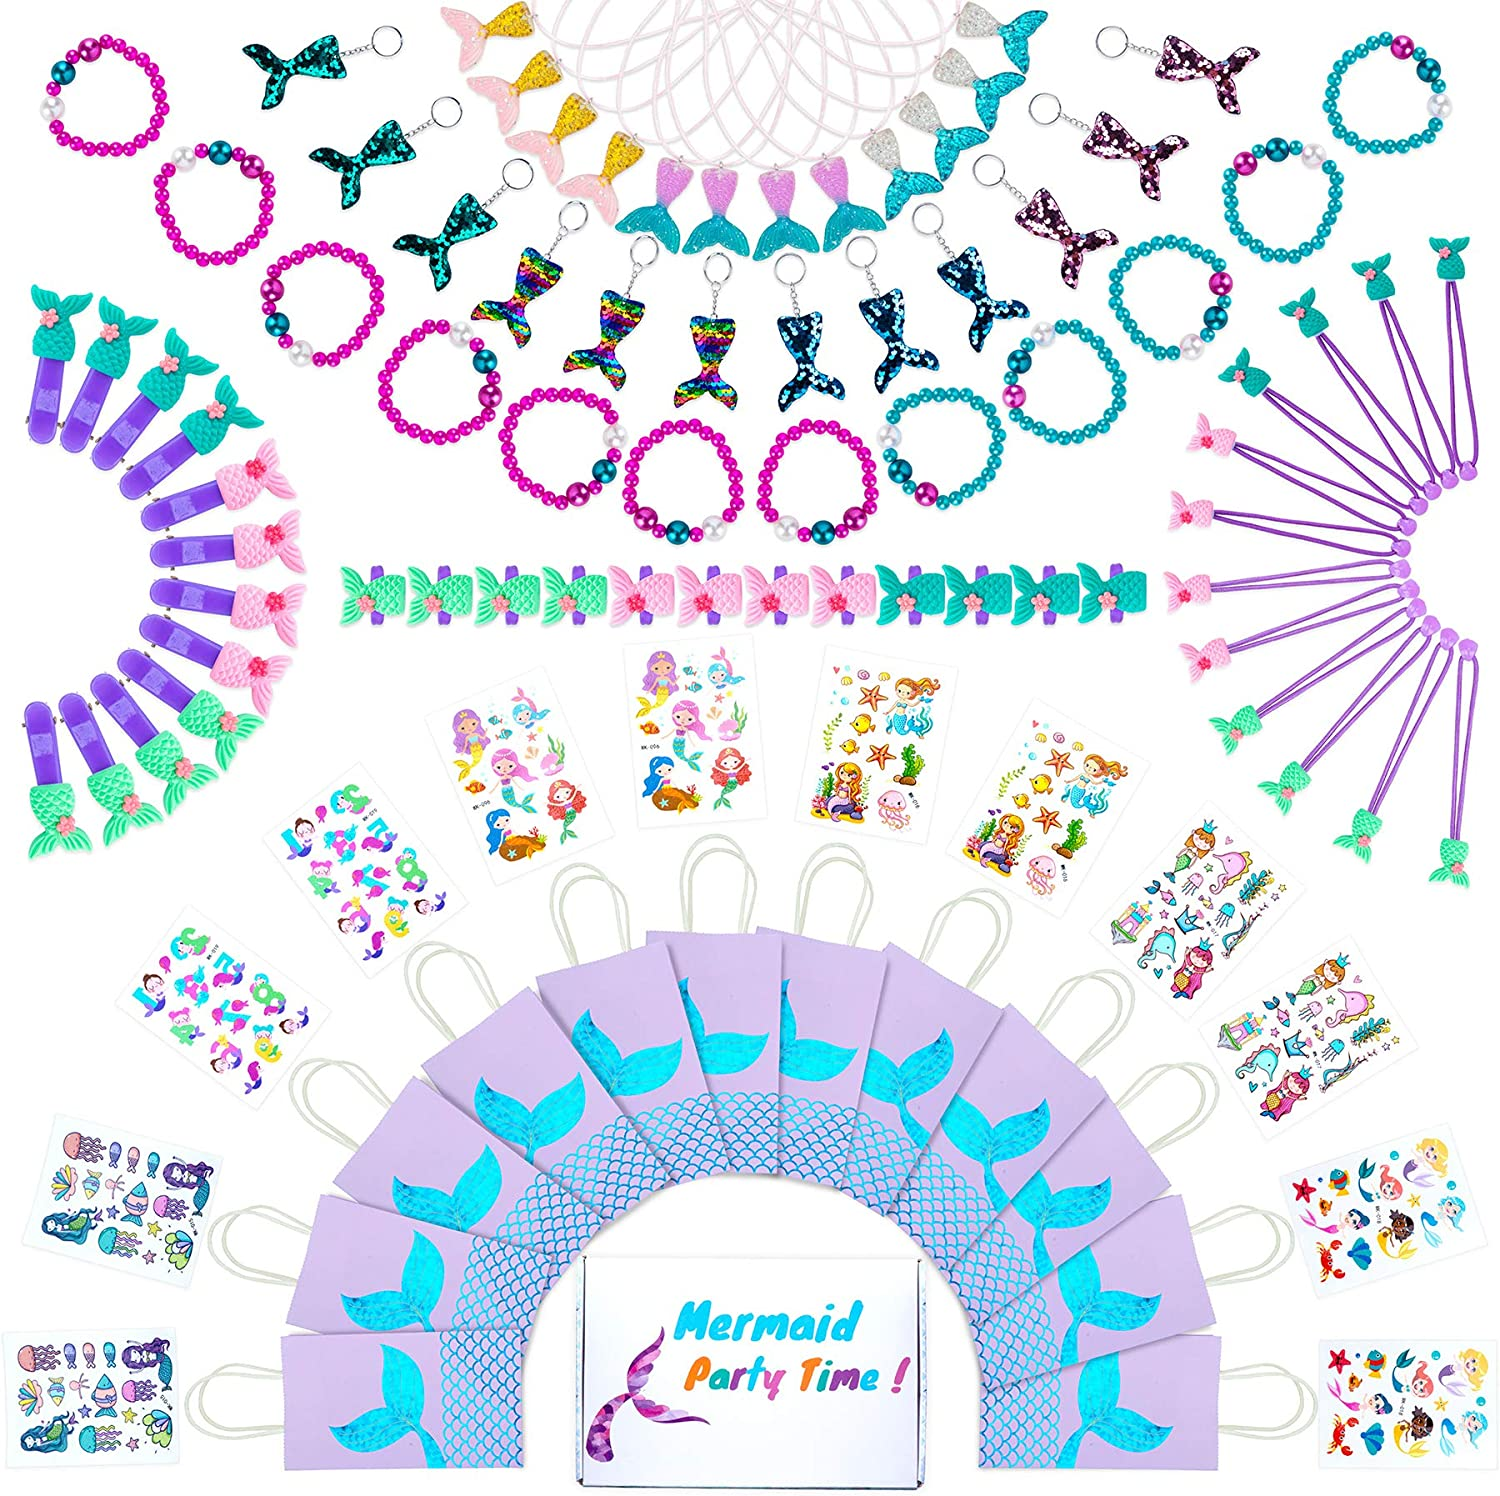 Mermaid Party Favors & Goodie Bags | Little Mermaid Birthday Supplies & Decorations Kit | Mermaid Themed Bracelet, Paper Candy/Gift Bag, Key Chains, Accessories Party Favor Set For 12 Kids/Girls